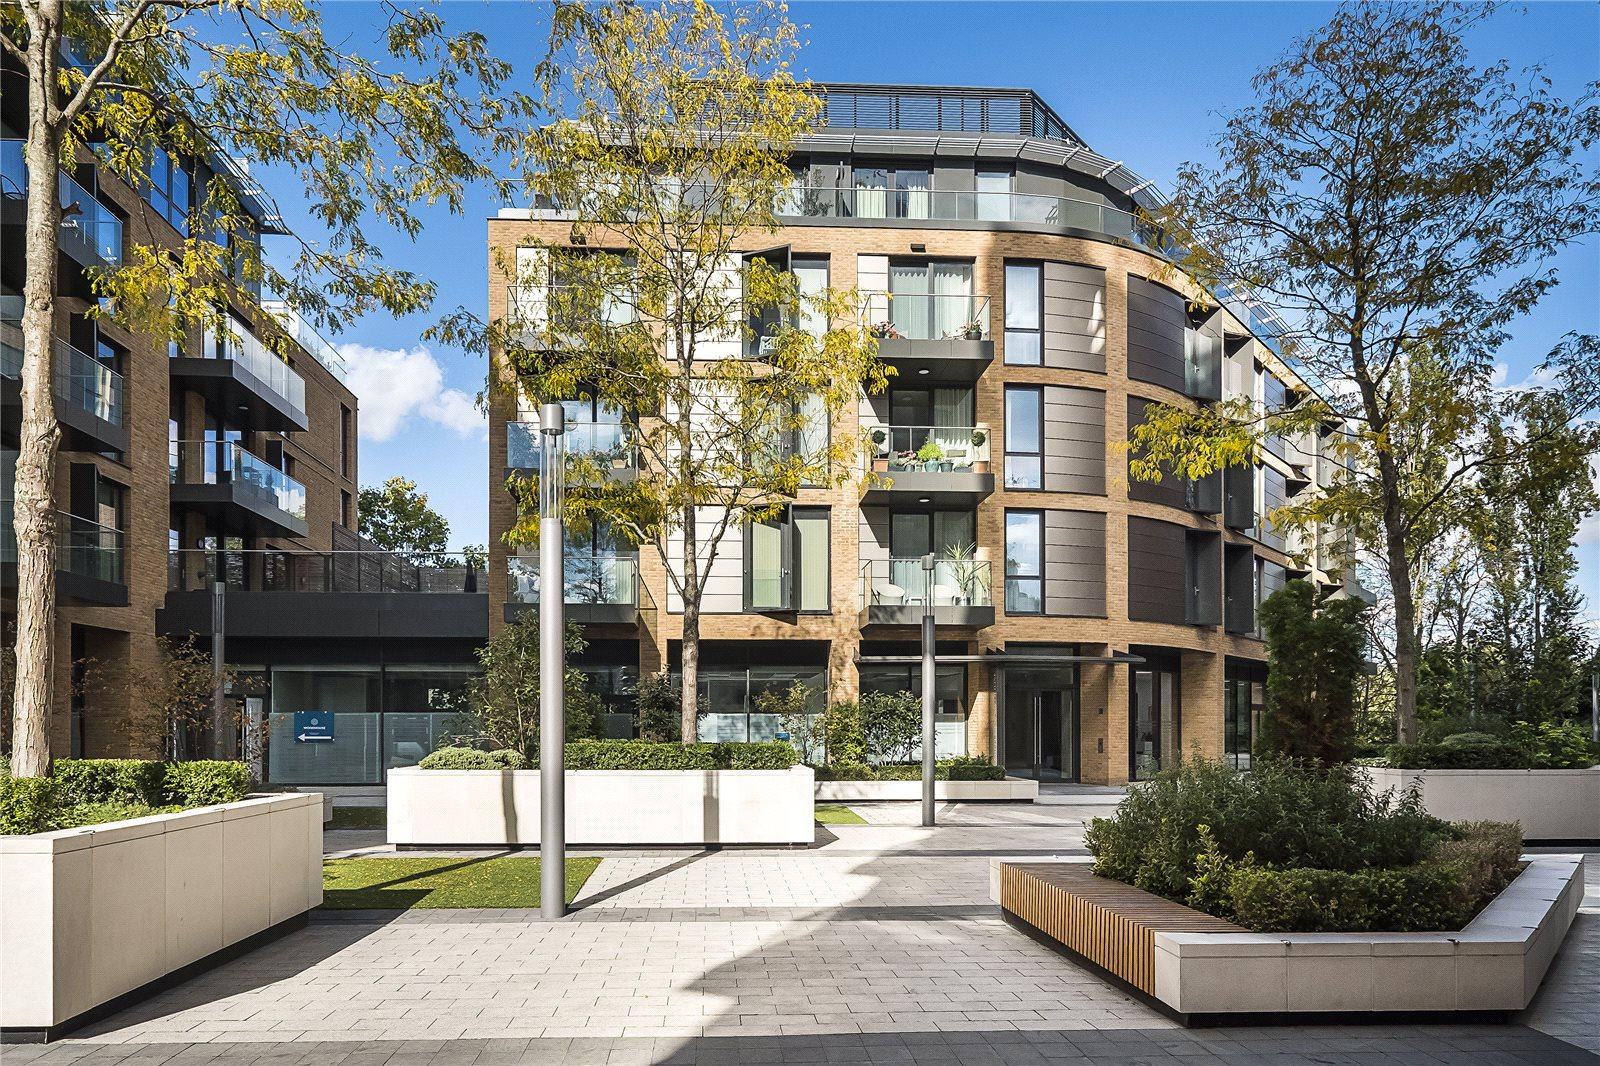 2 Bedroom Garden Flat London 2 Bedroom Flat For Sale In Millennium House 10 Plaza